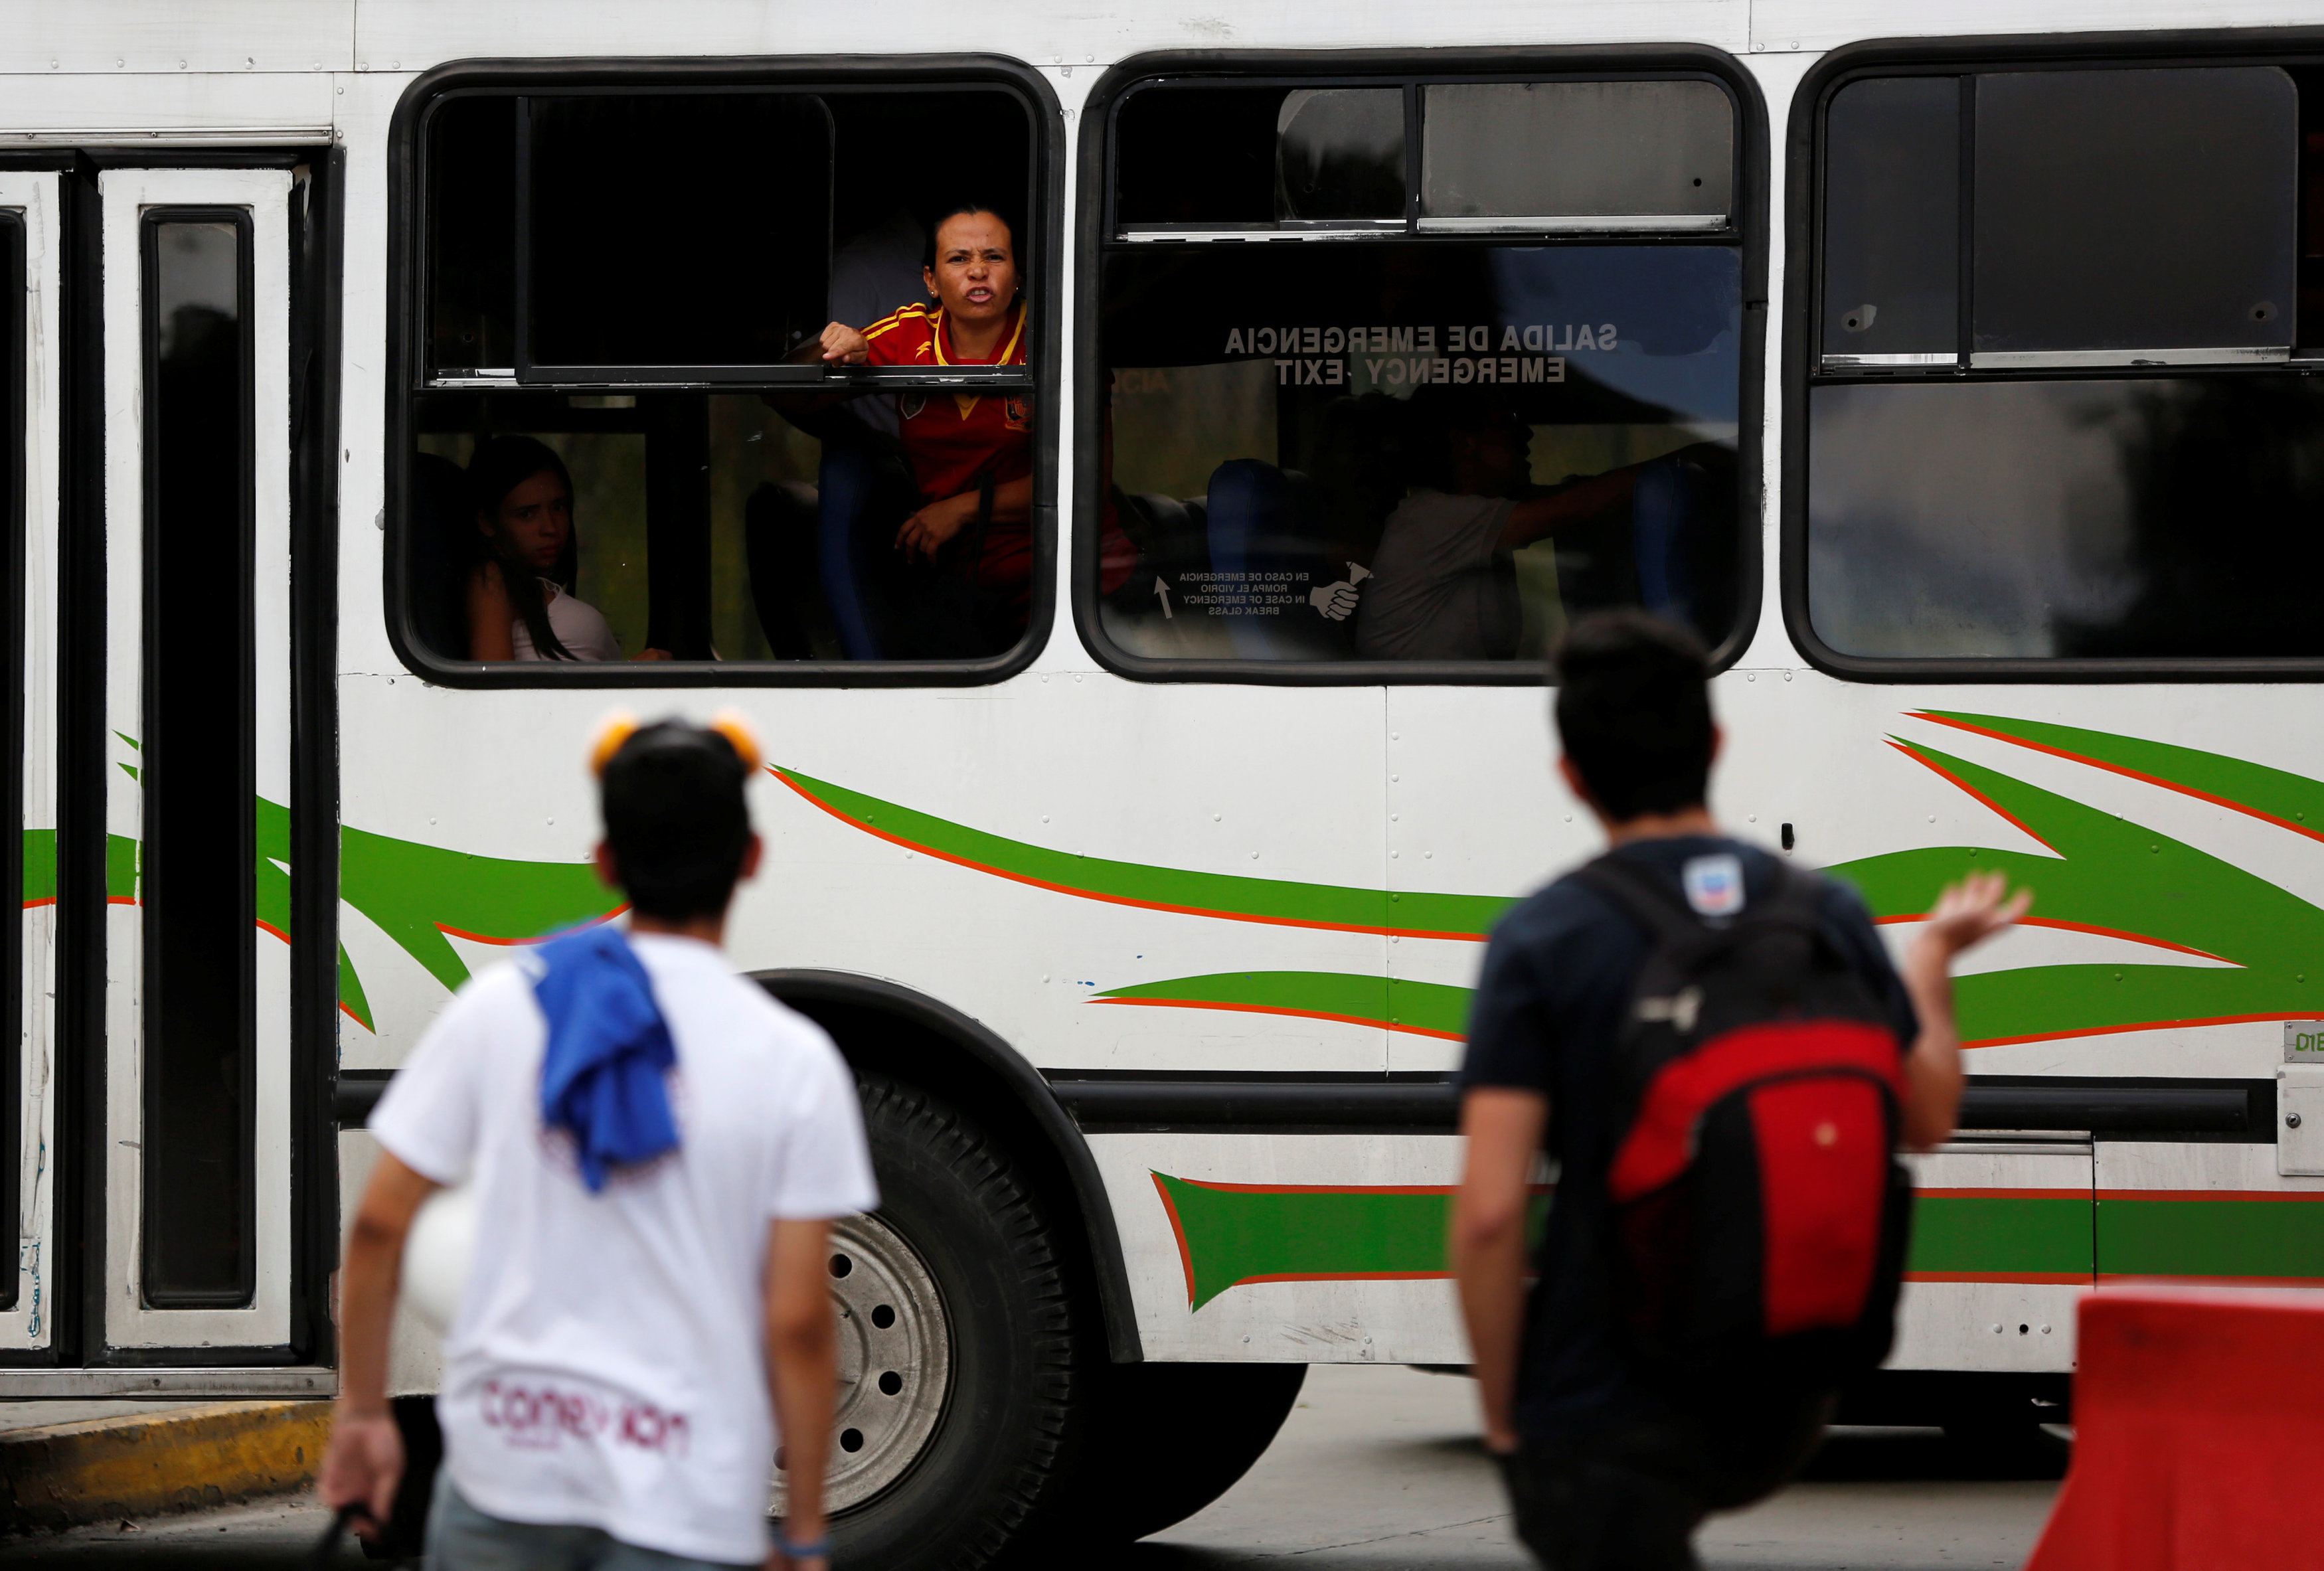 A female passenger on a bus argues with opposition supporters blocking a street during a rally against Venezuela's President Nicolas Maduro's Government in Caracas, Venezuela, June 30, 2017. REUTERS/Ivan Alvarado